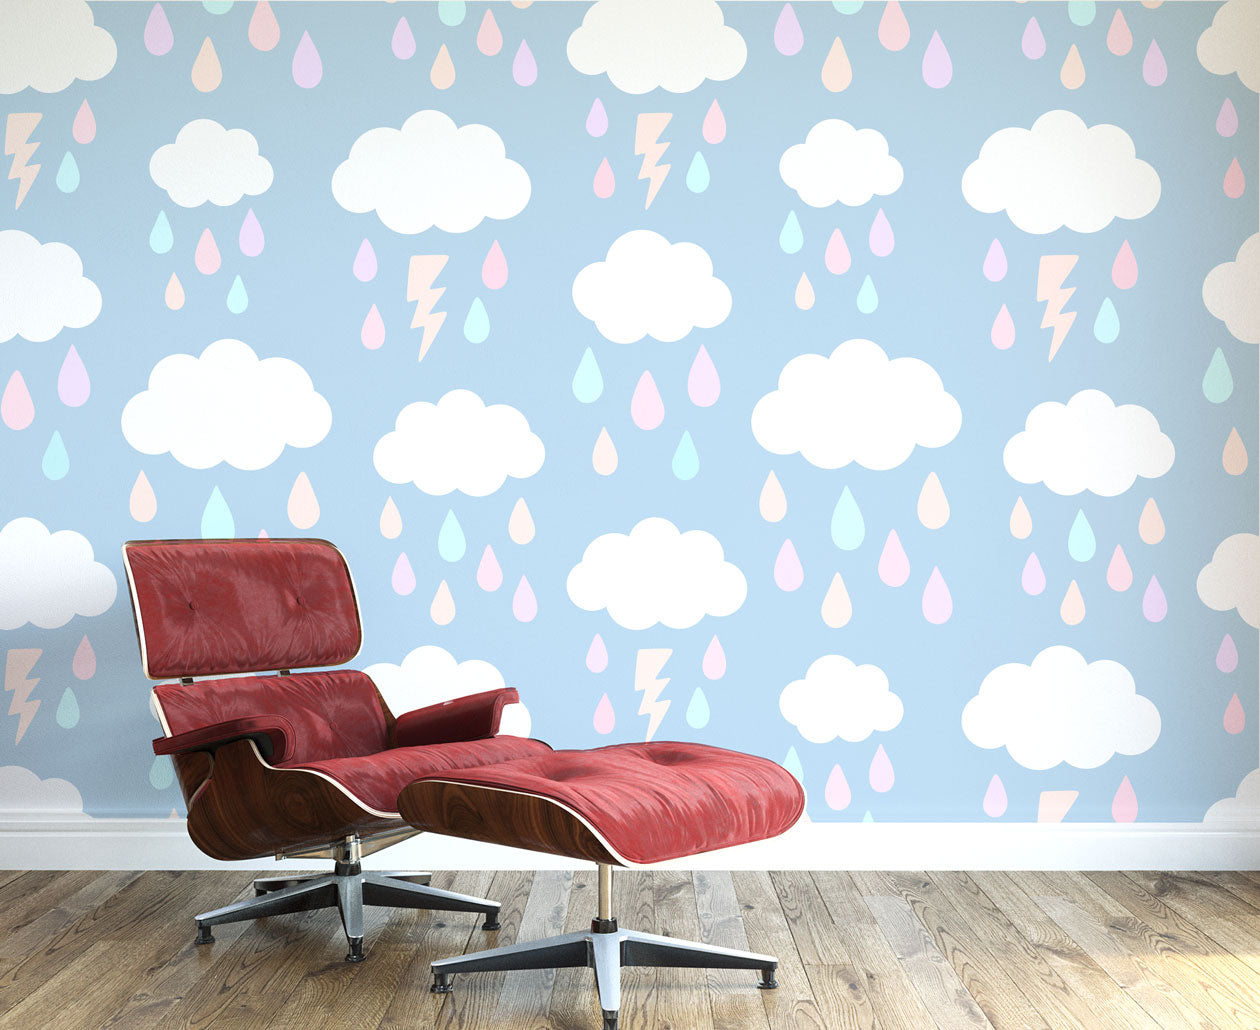 Rain And Clouds Wall Mural